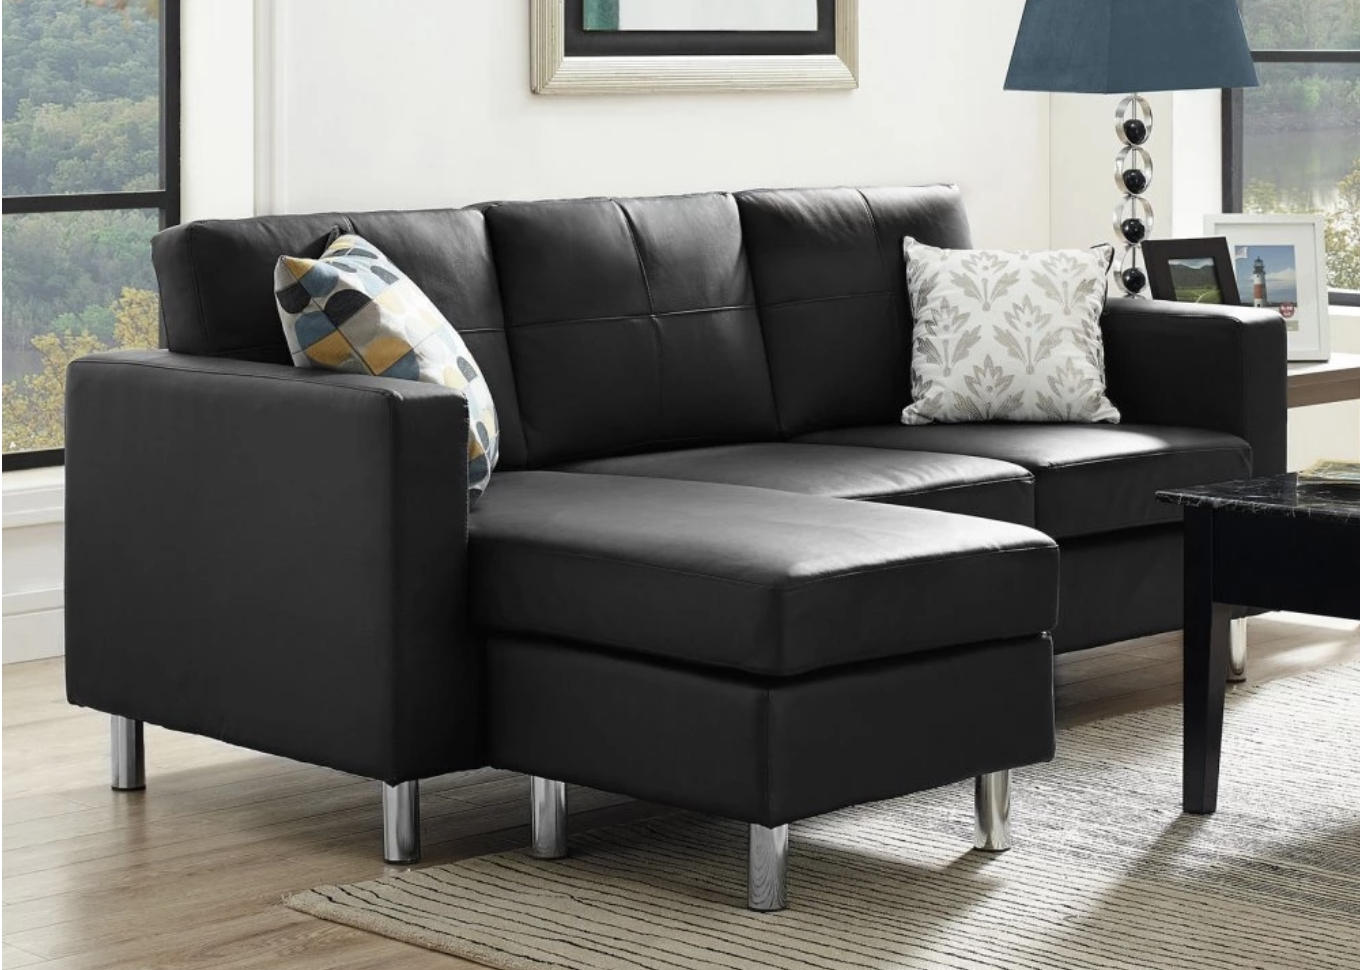 75 Modern Sectional Sofas For Small Spaces (2018) In Sectional Sofas For Small Places (Image 2 of 10)